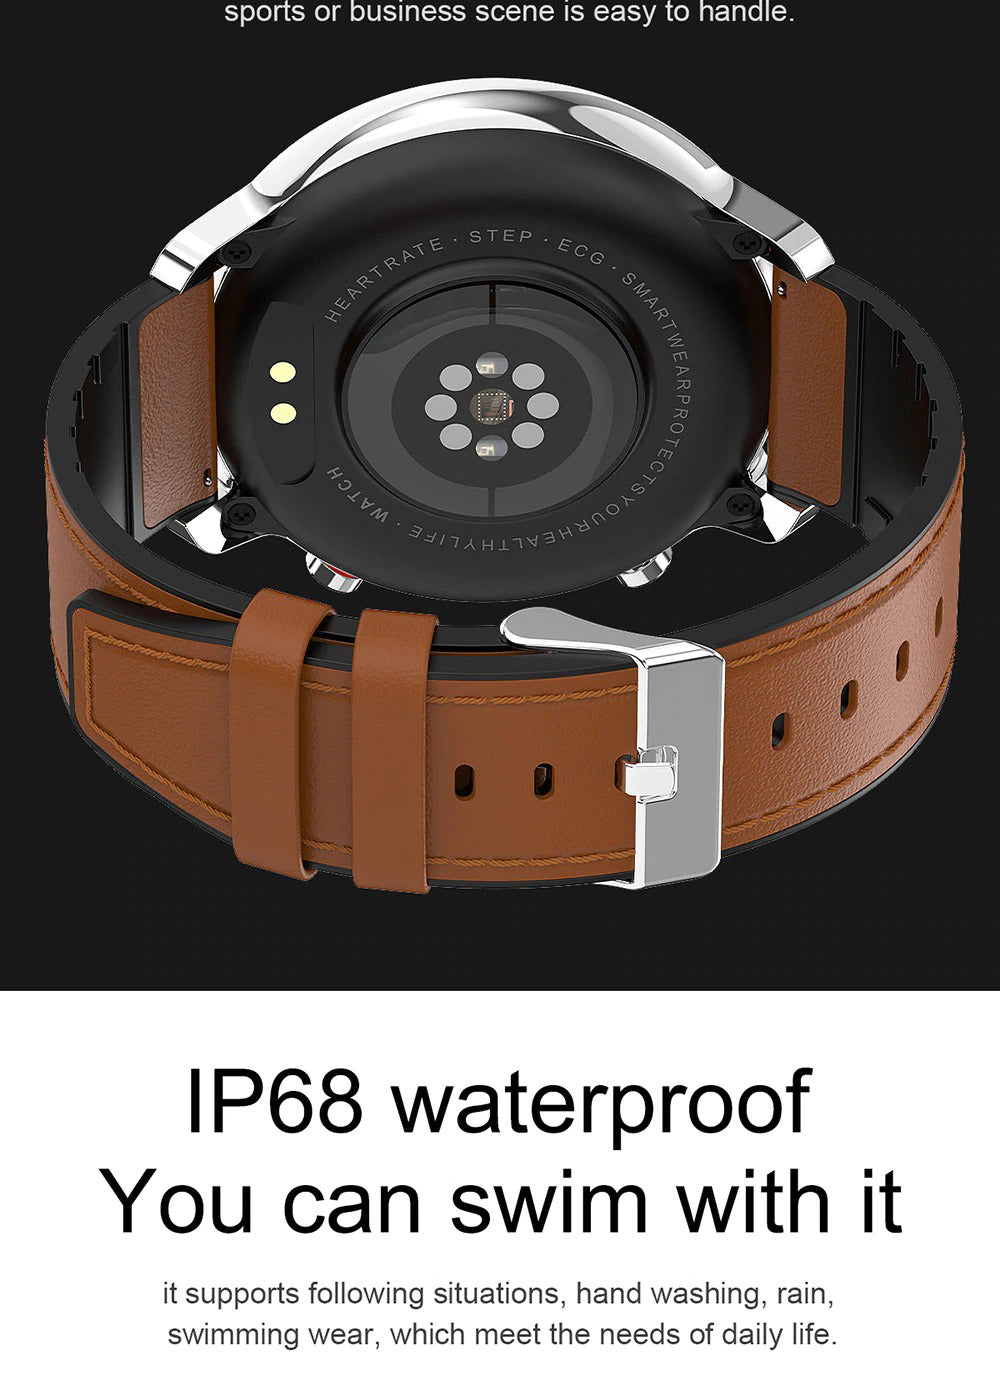 X9 Beretta Smart Watch Make IP68 Waterproof Swim